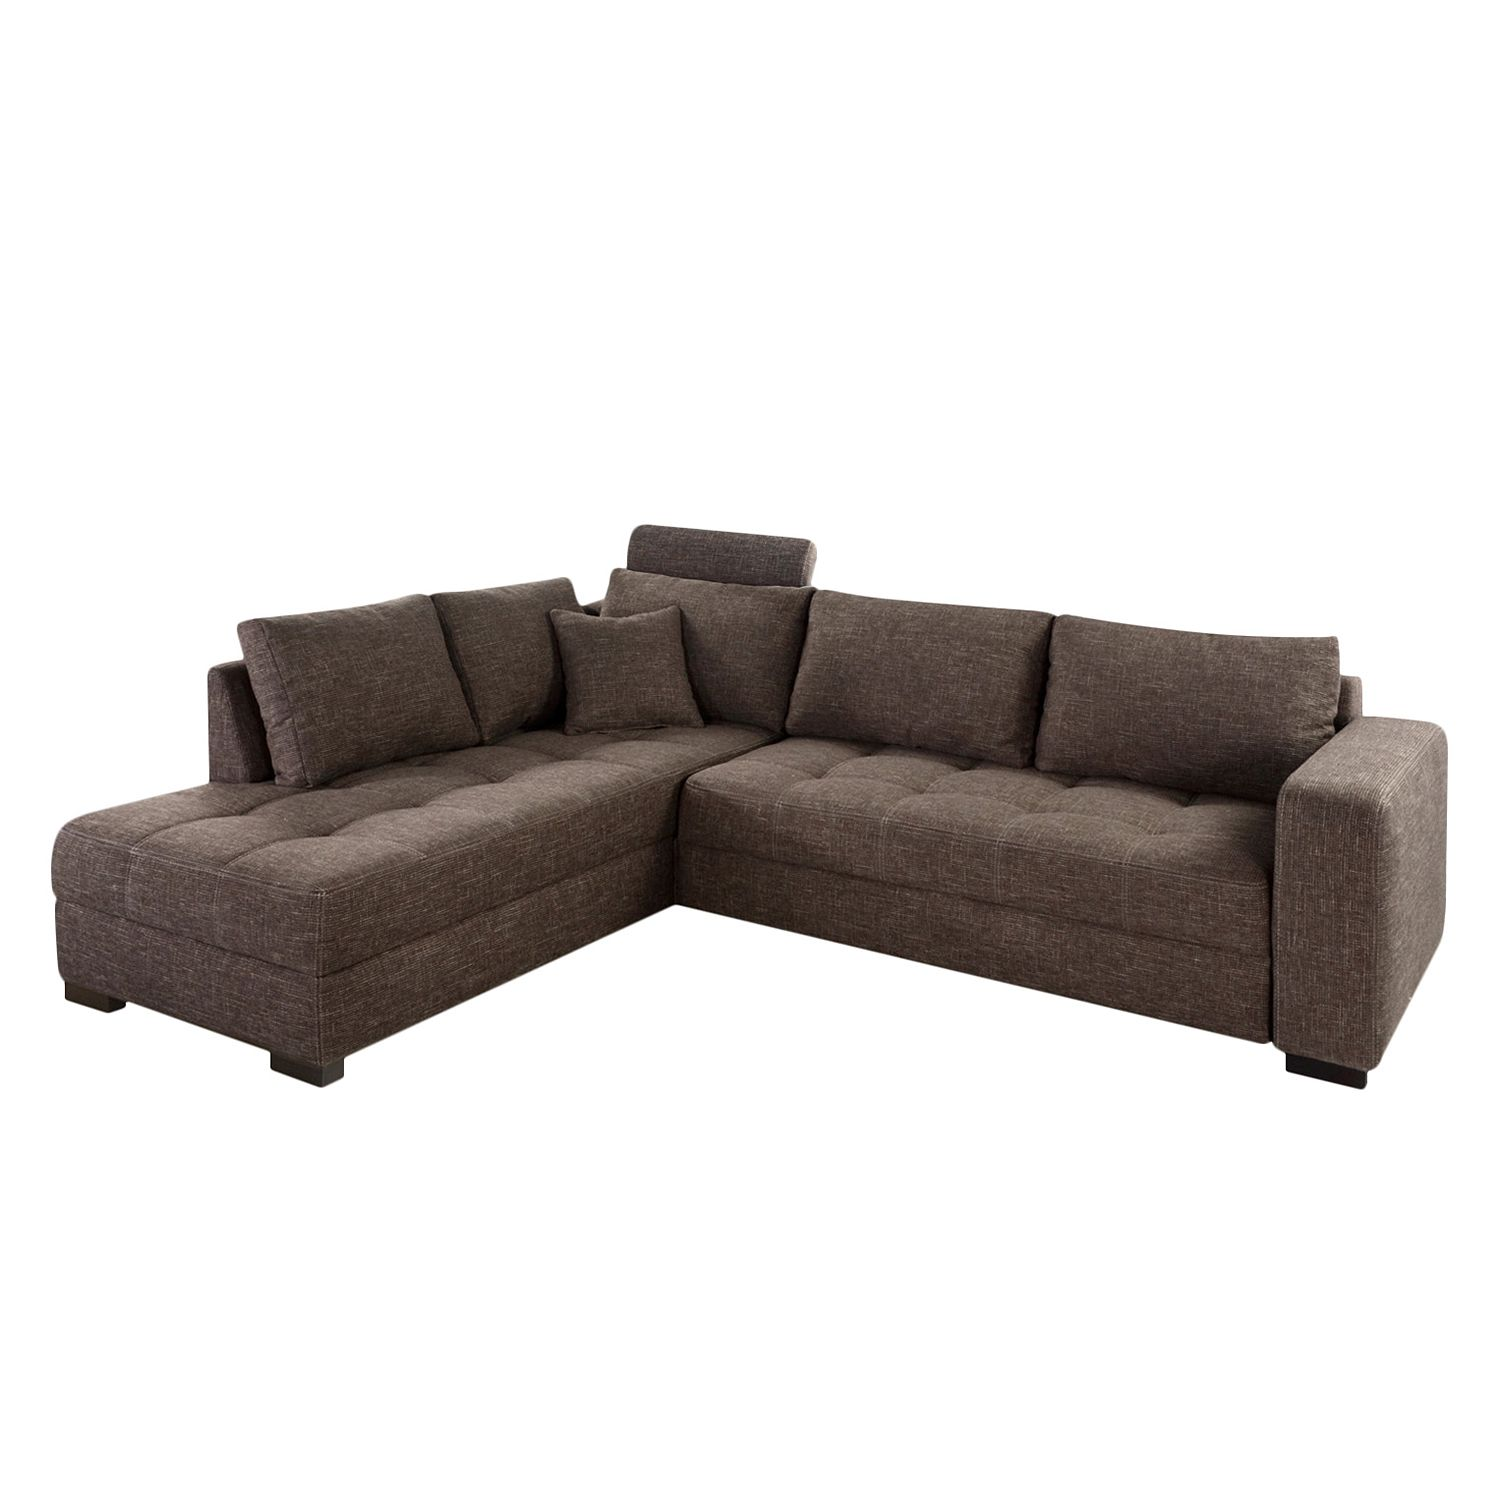 ecksofa mit schlaffunktion grau ecksofa maxie 330x178 cm. Black Bedroom Furniture Sets. Home Design Ideas